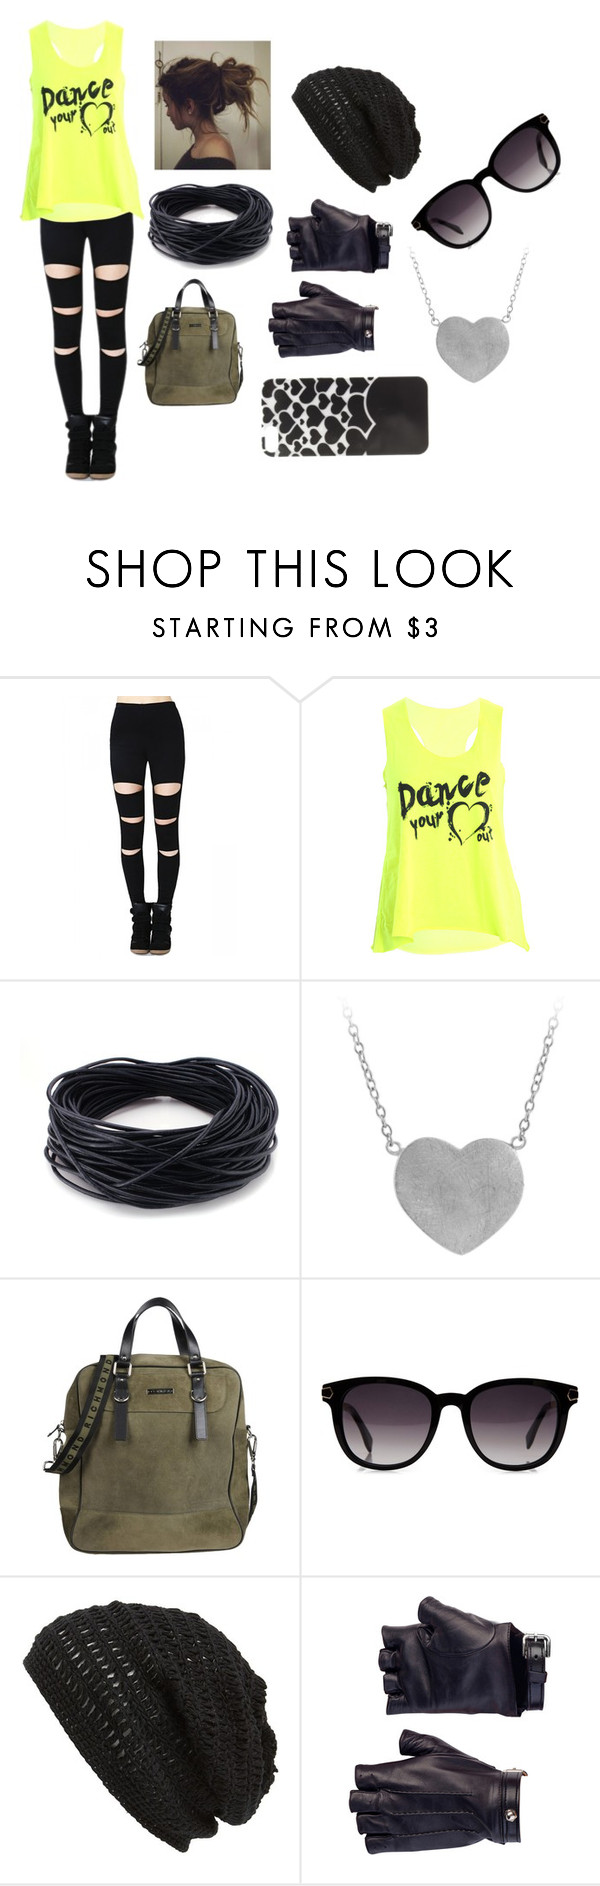 """""""Untitled #193"""" by artlove1997 ❤ liked on Polyvore featuring Gia-Mia, ADORNIA, Richmond, Fendi, King & Fifth Supply Co. and Les Cinq"""